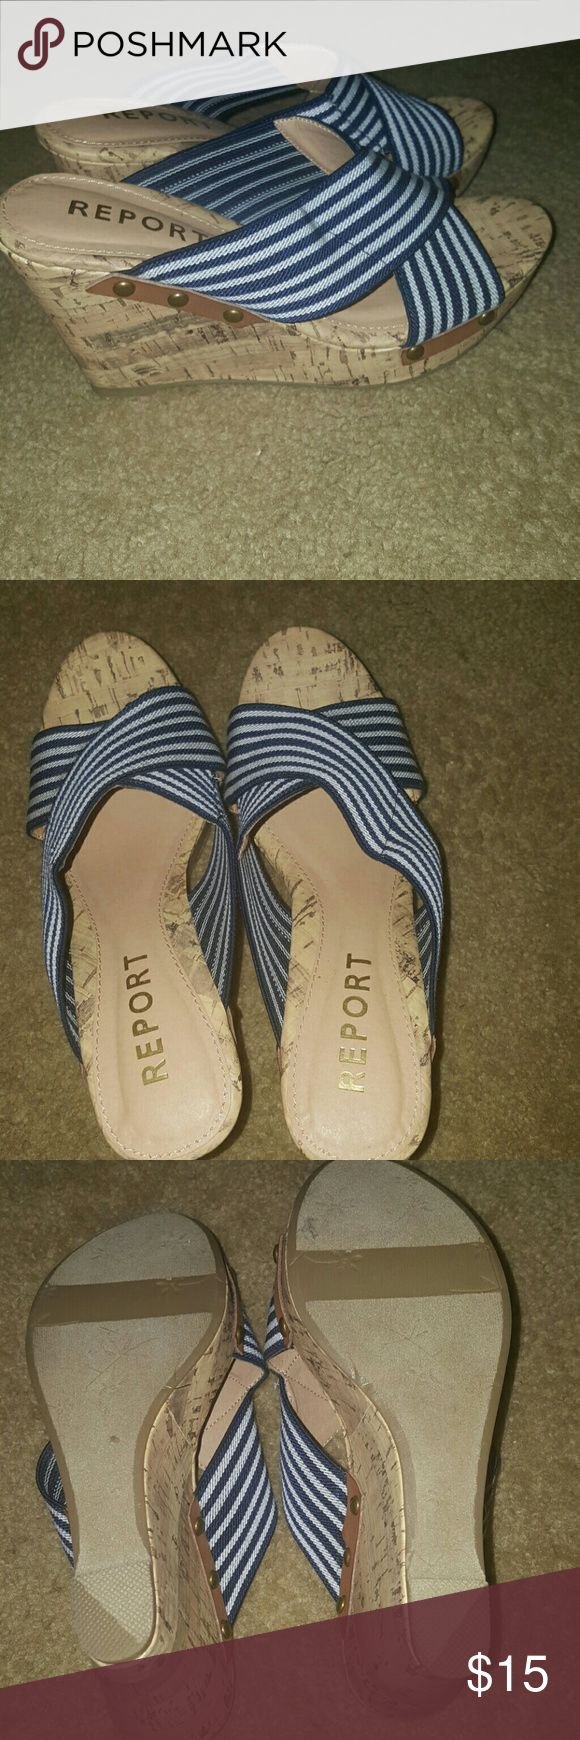 💕SALE💕Blue and white wedges Blue and white stripped wedges..... NWOT ✅Make an offer through OFFER button ONLY ✅Negotiations welcome 🚫No trades 🚫No PayPal Report Shoes Wedges